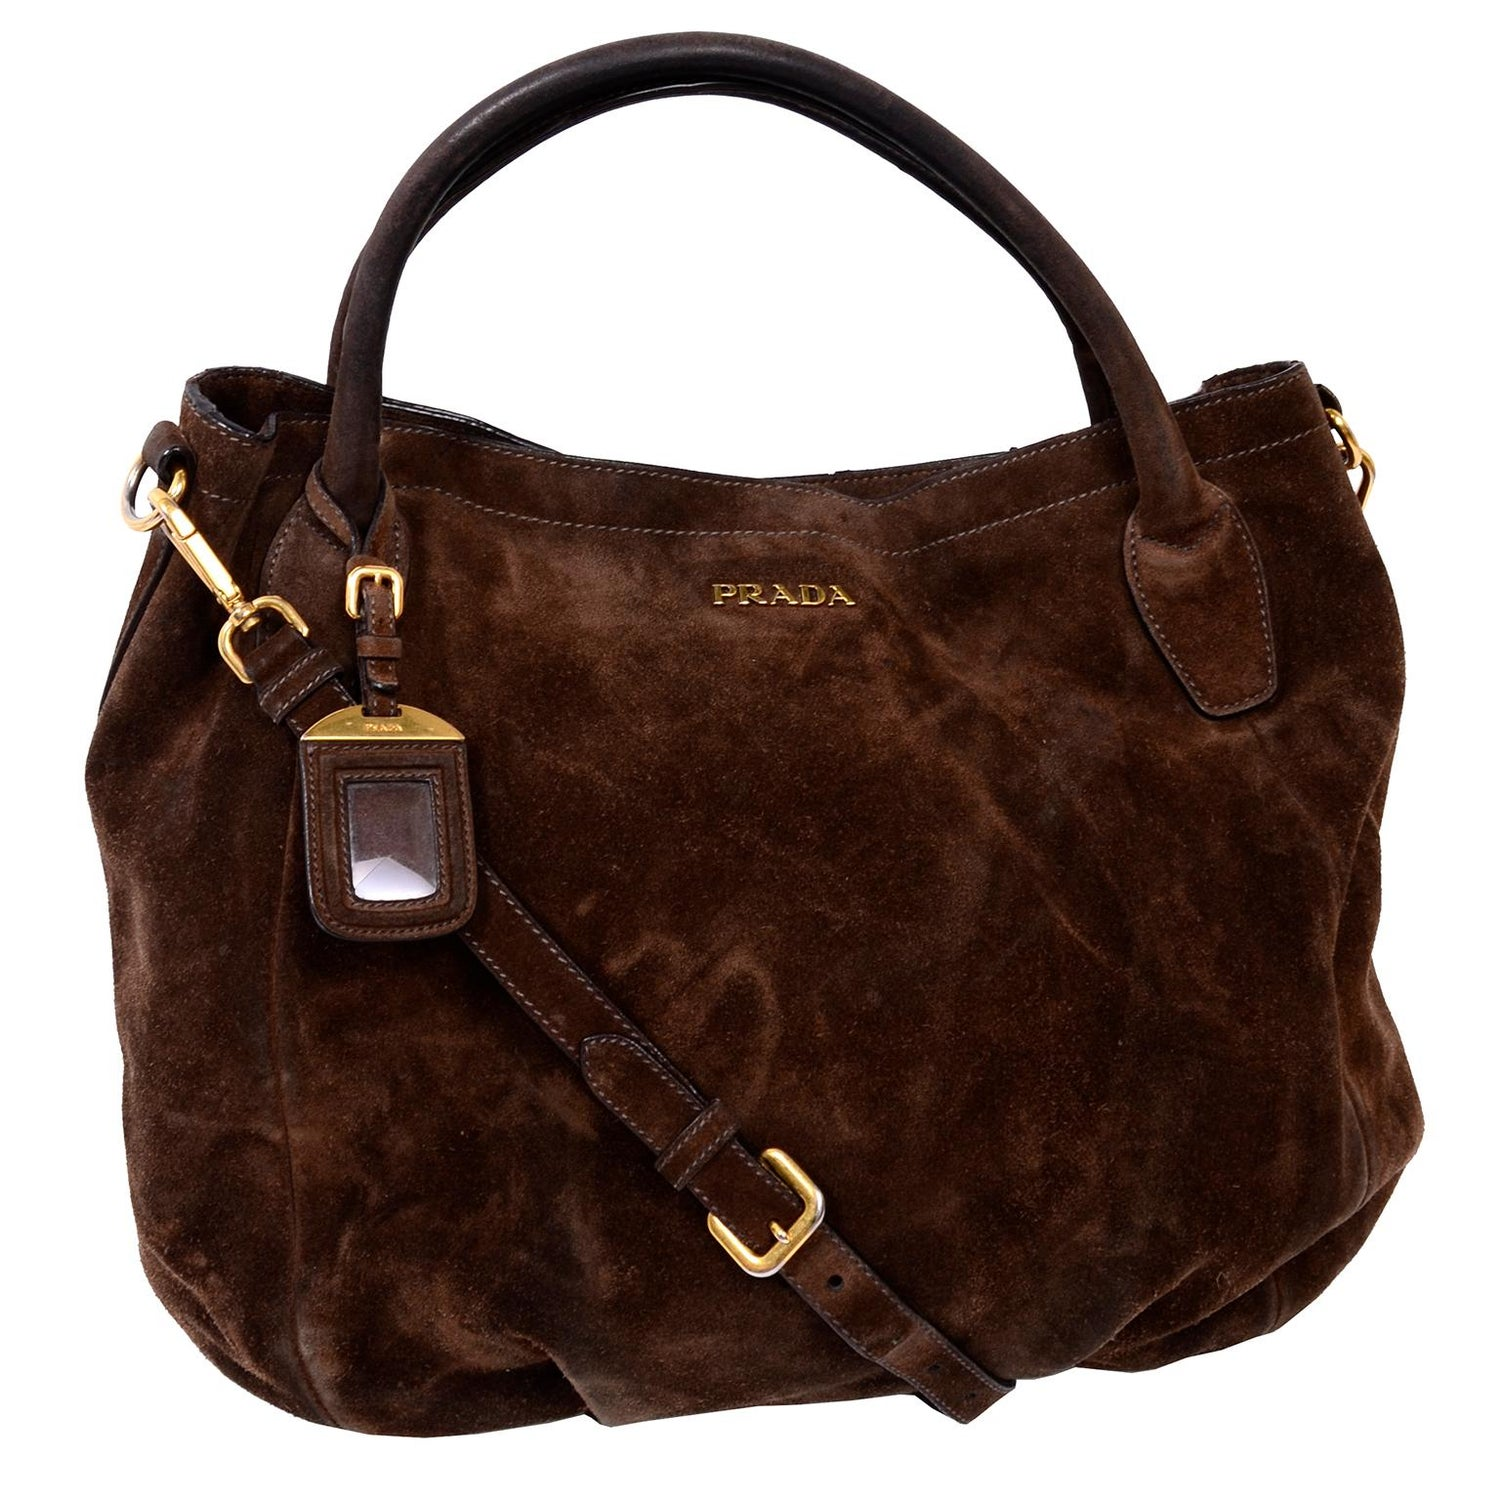 dd61a6fc3dc9 Prada Scamosciato Handbag in Chocolate Brown Suede Shoulder Bag For Sale at  1stdibs